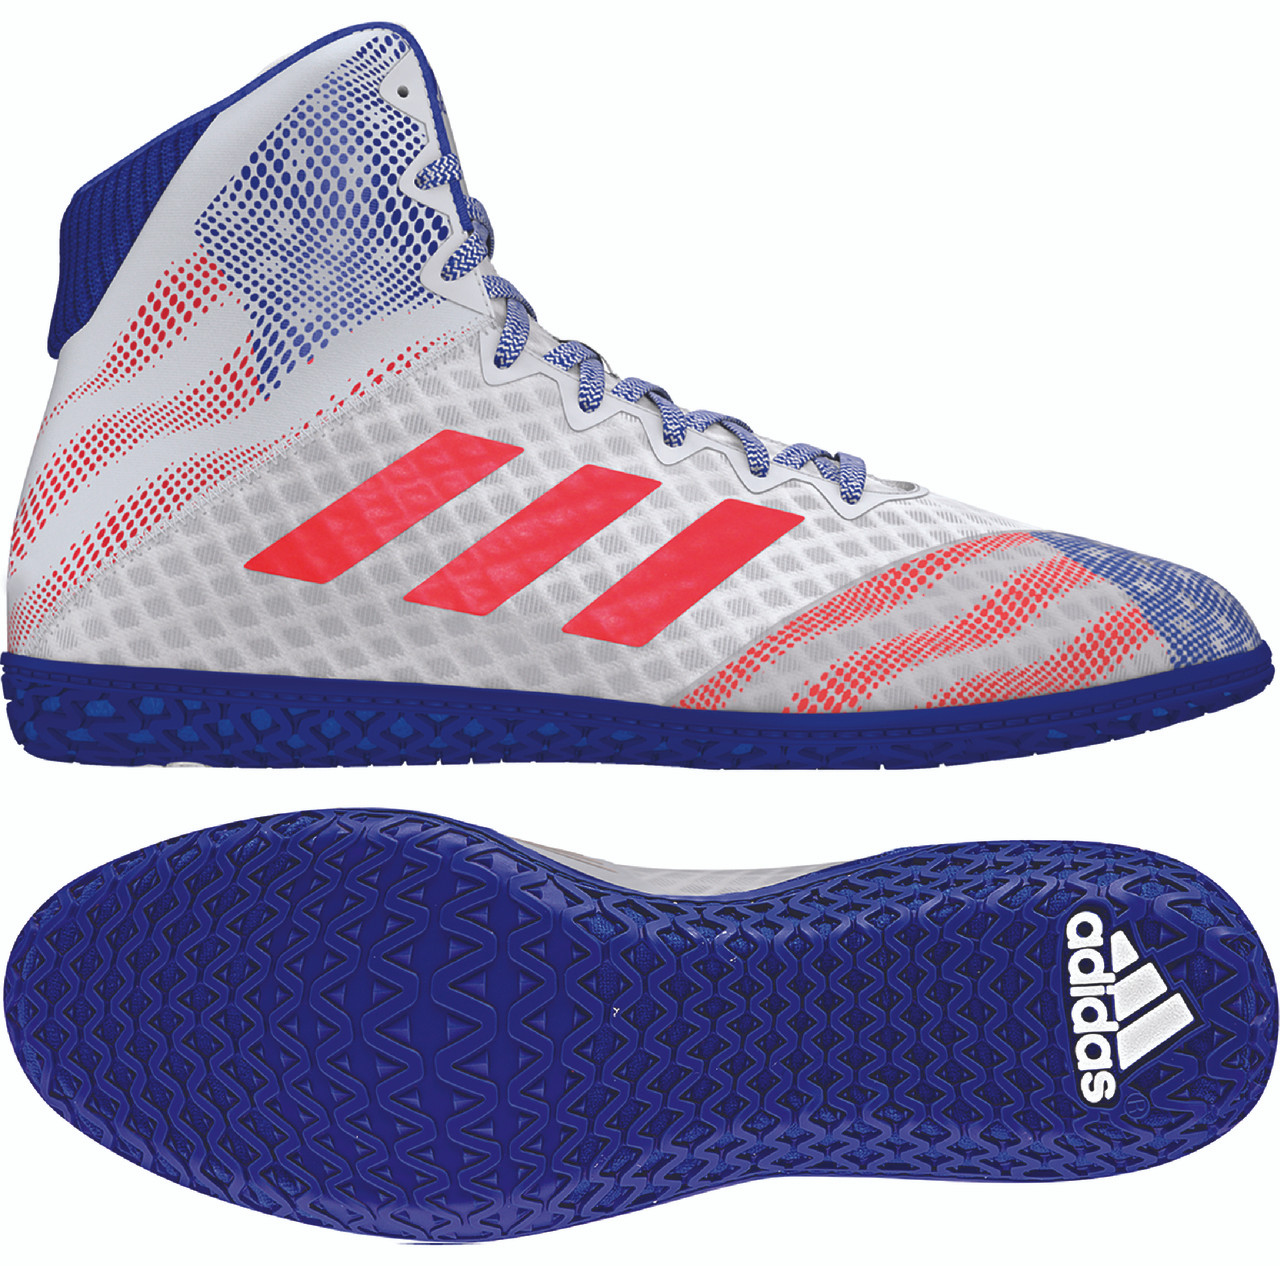 ADIDAS MAT WIZARD HYPE WHITEBLUERED BY ADIDAS EF1475